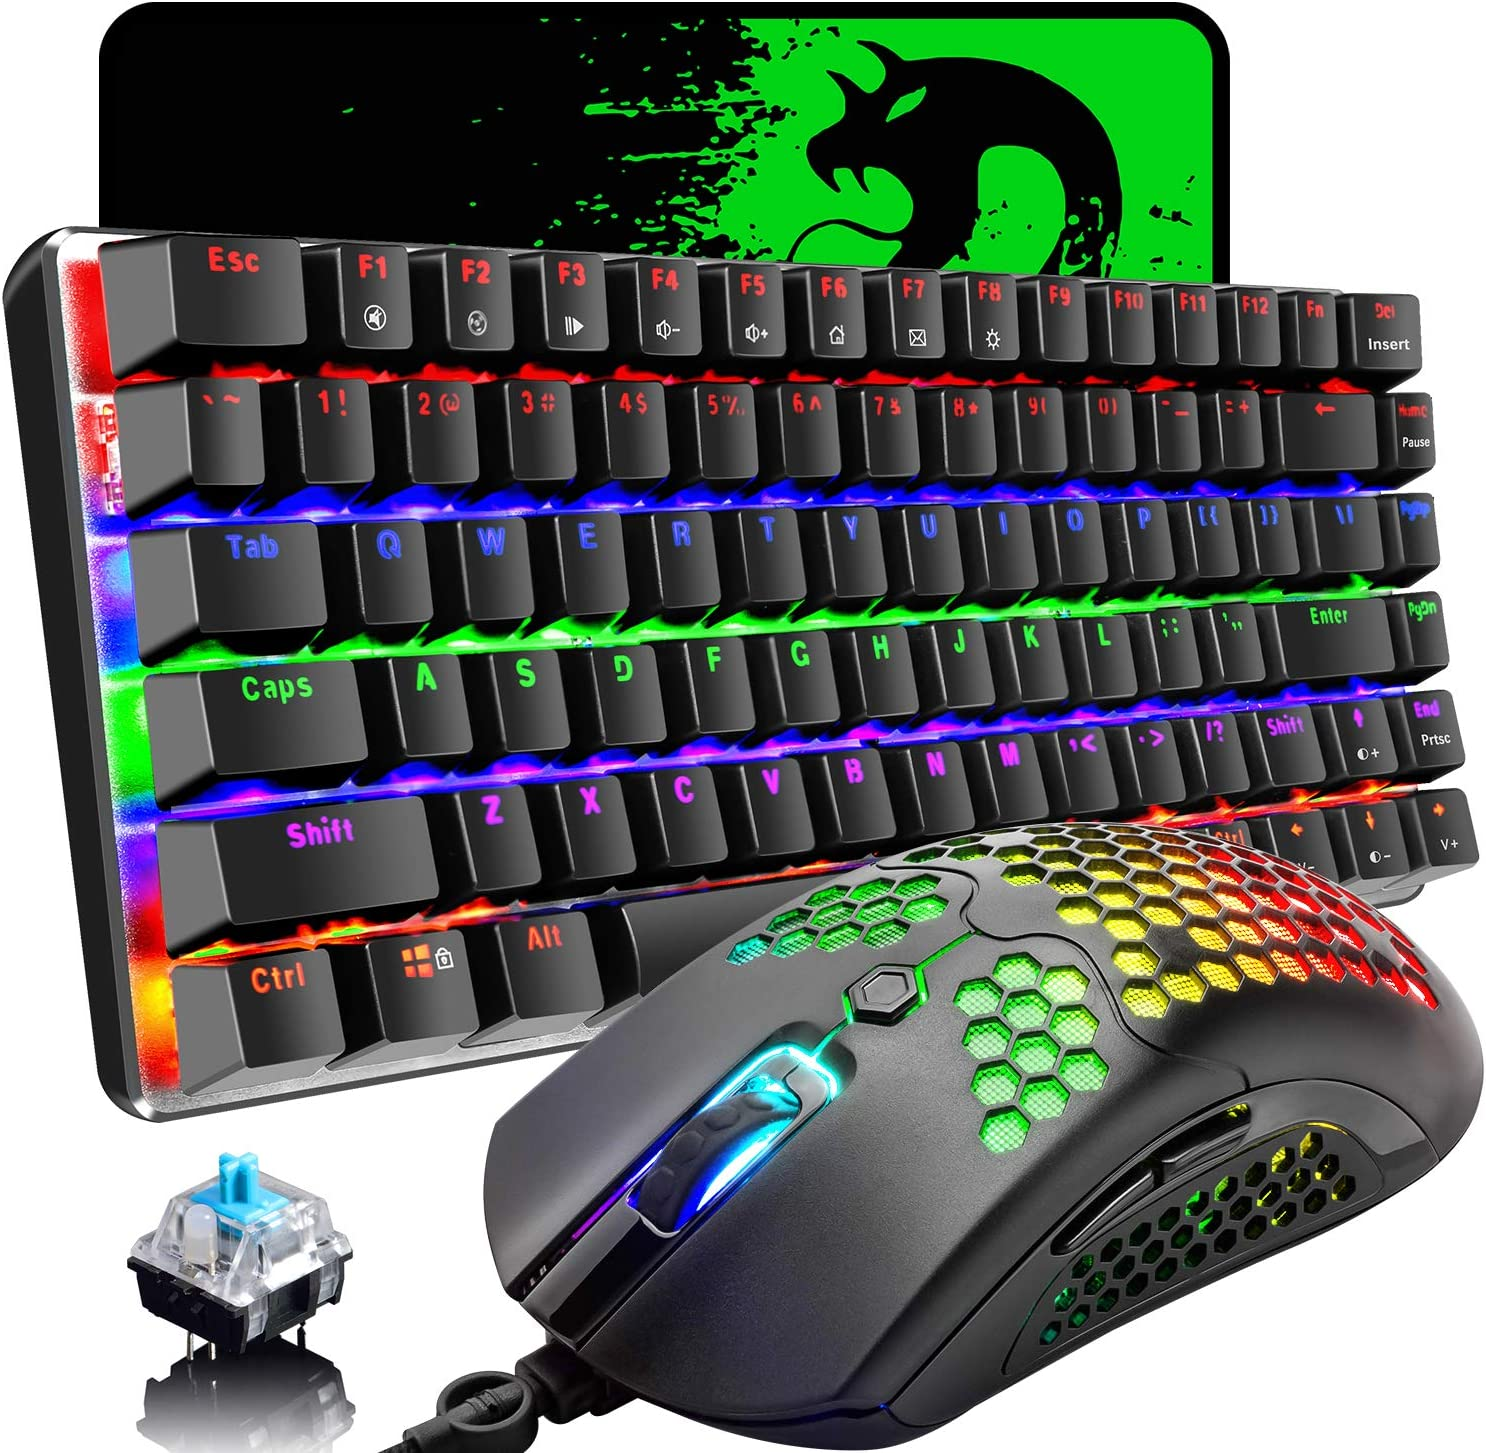 Gaming Keyboard and Mouse,3 in 1 Gaming Set,Rainbow LED Backlit Wired Gaming Keyboard,RGB Backlit 12000 DPI Lightweight Gaming Mouse with Honeycomb Shell,Large Mouse Pad for PC Game(Black)